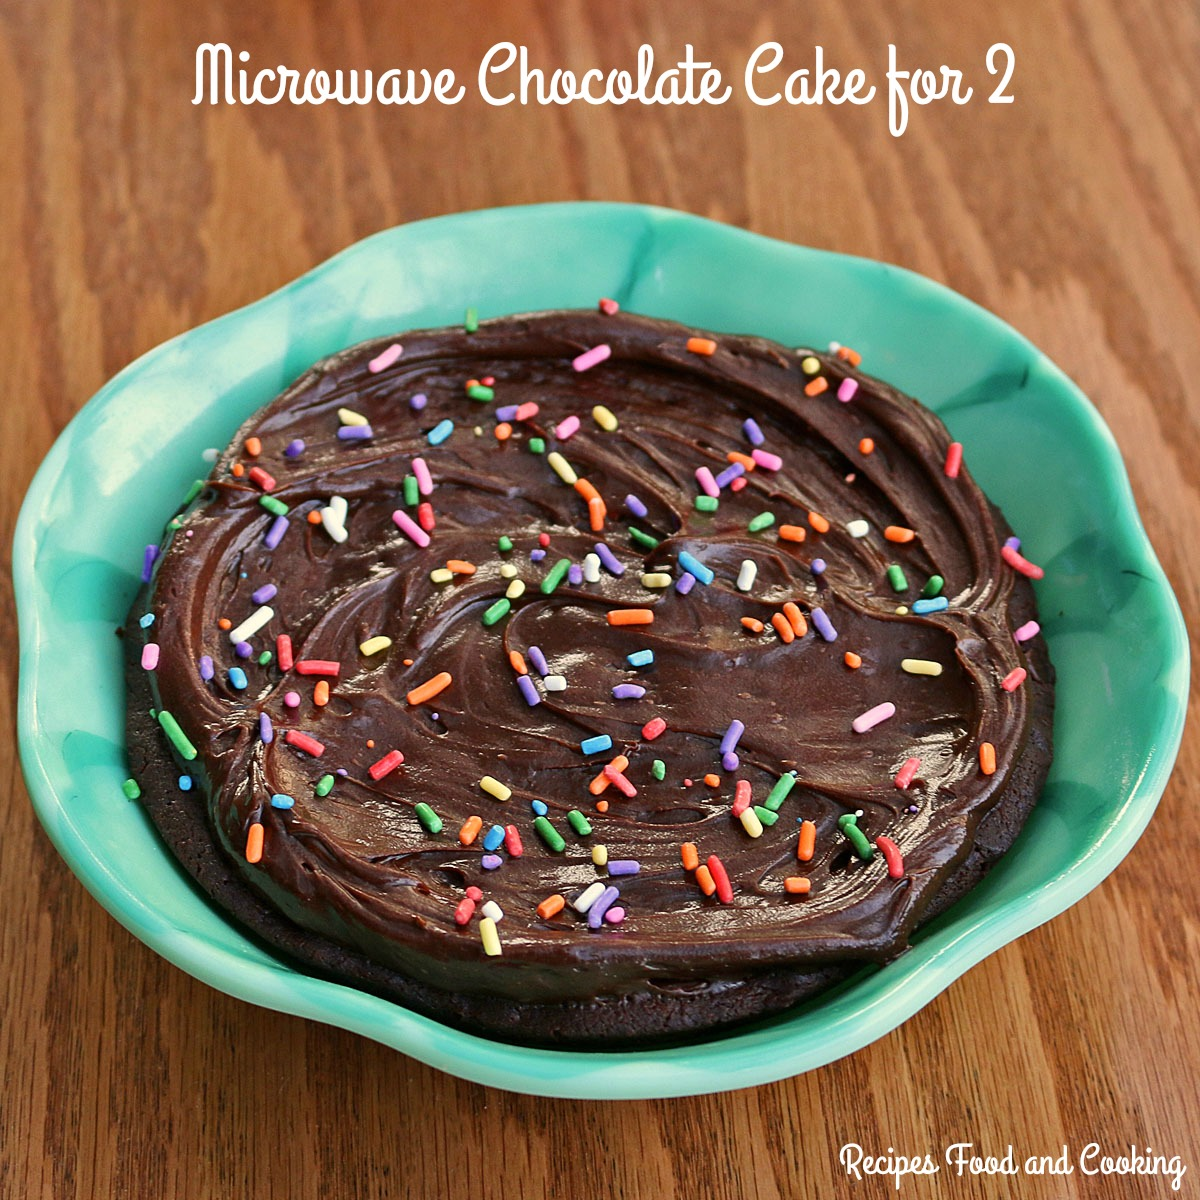 Chocolate Cake for 2